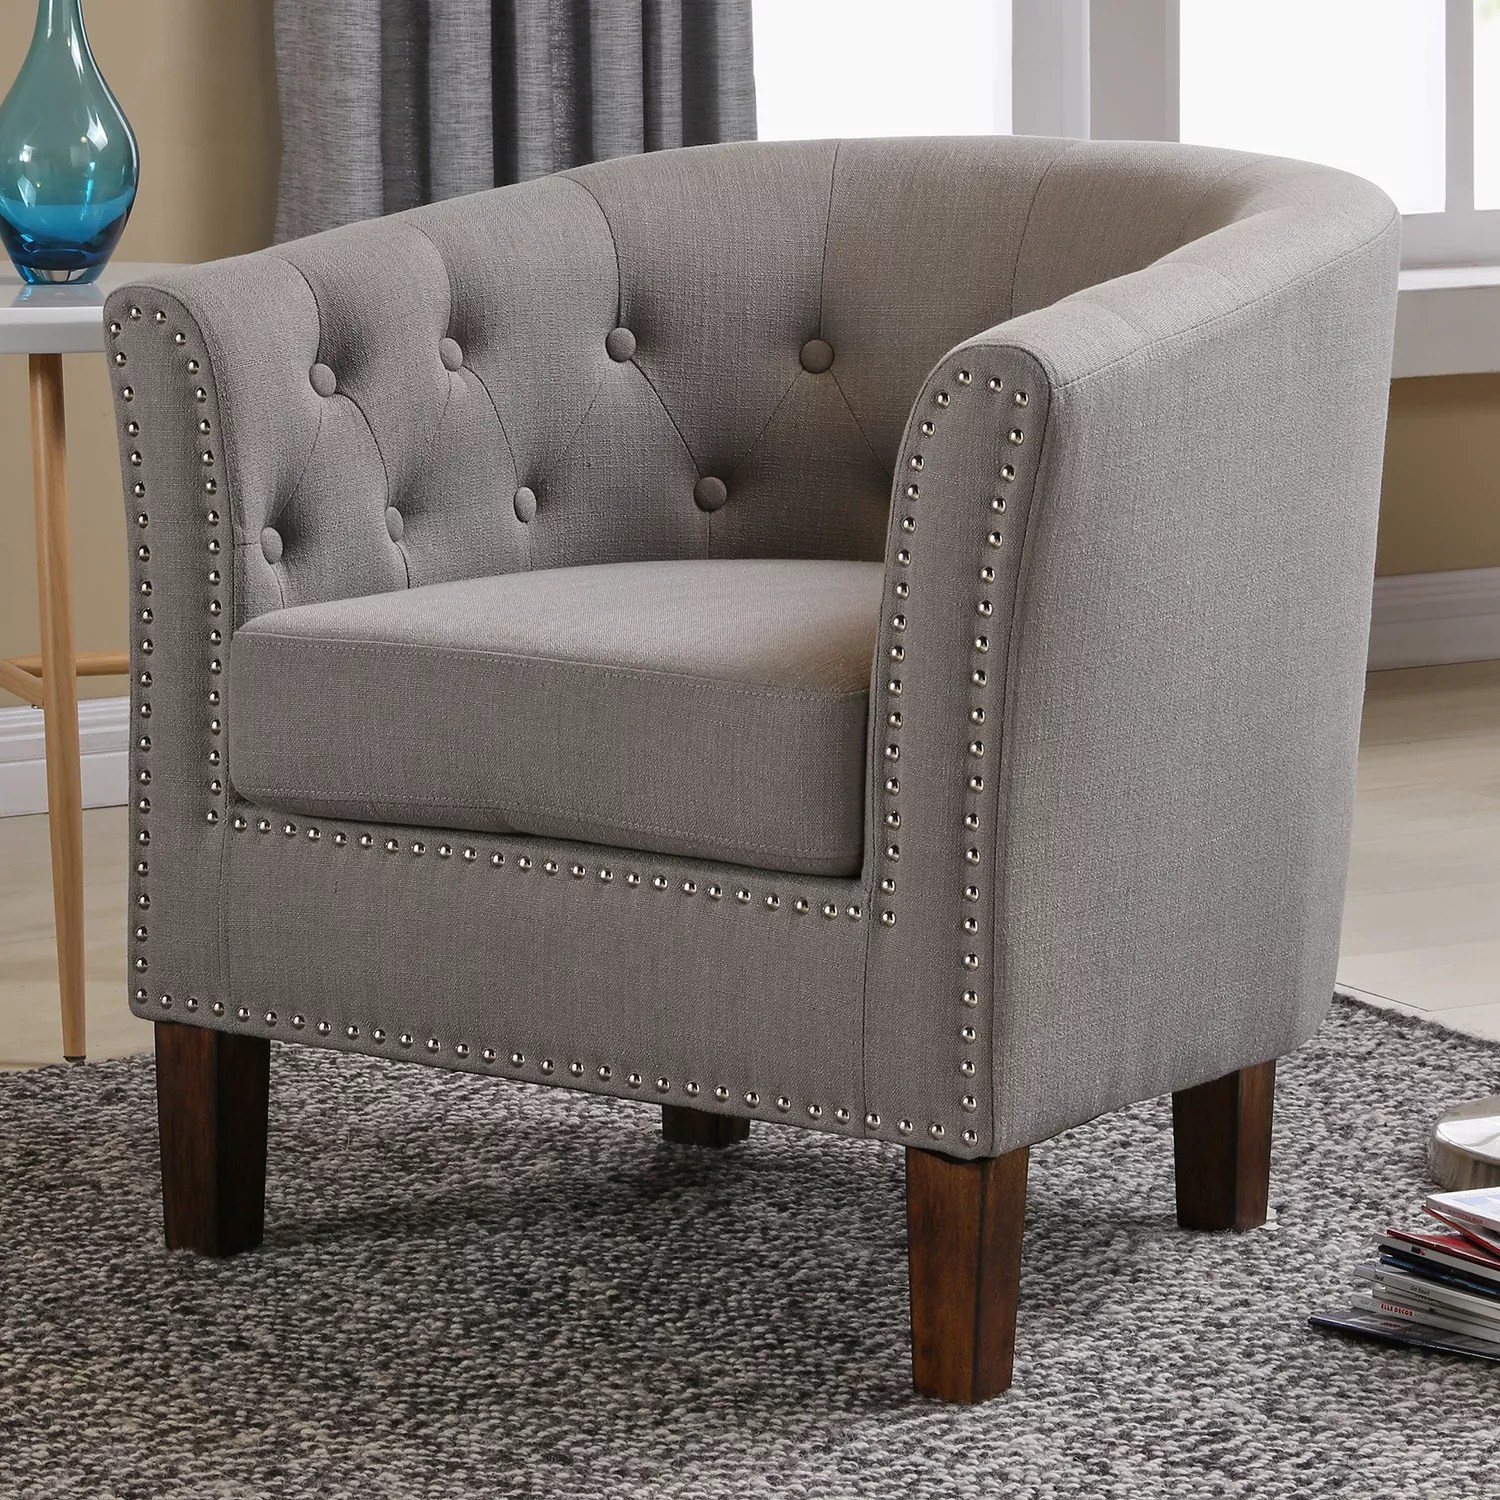 accent chair gray x rocker grey chairs furniture kohl s lincoln tufted tub